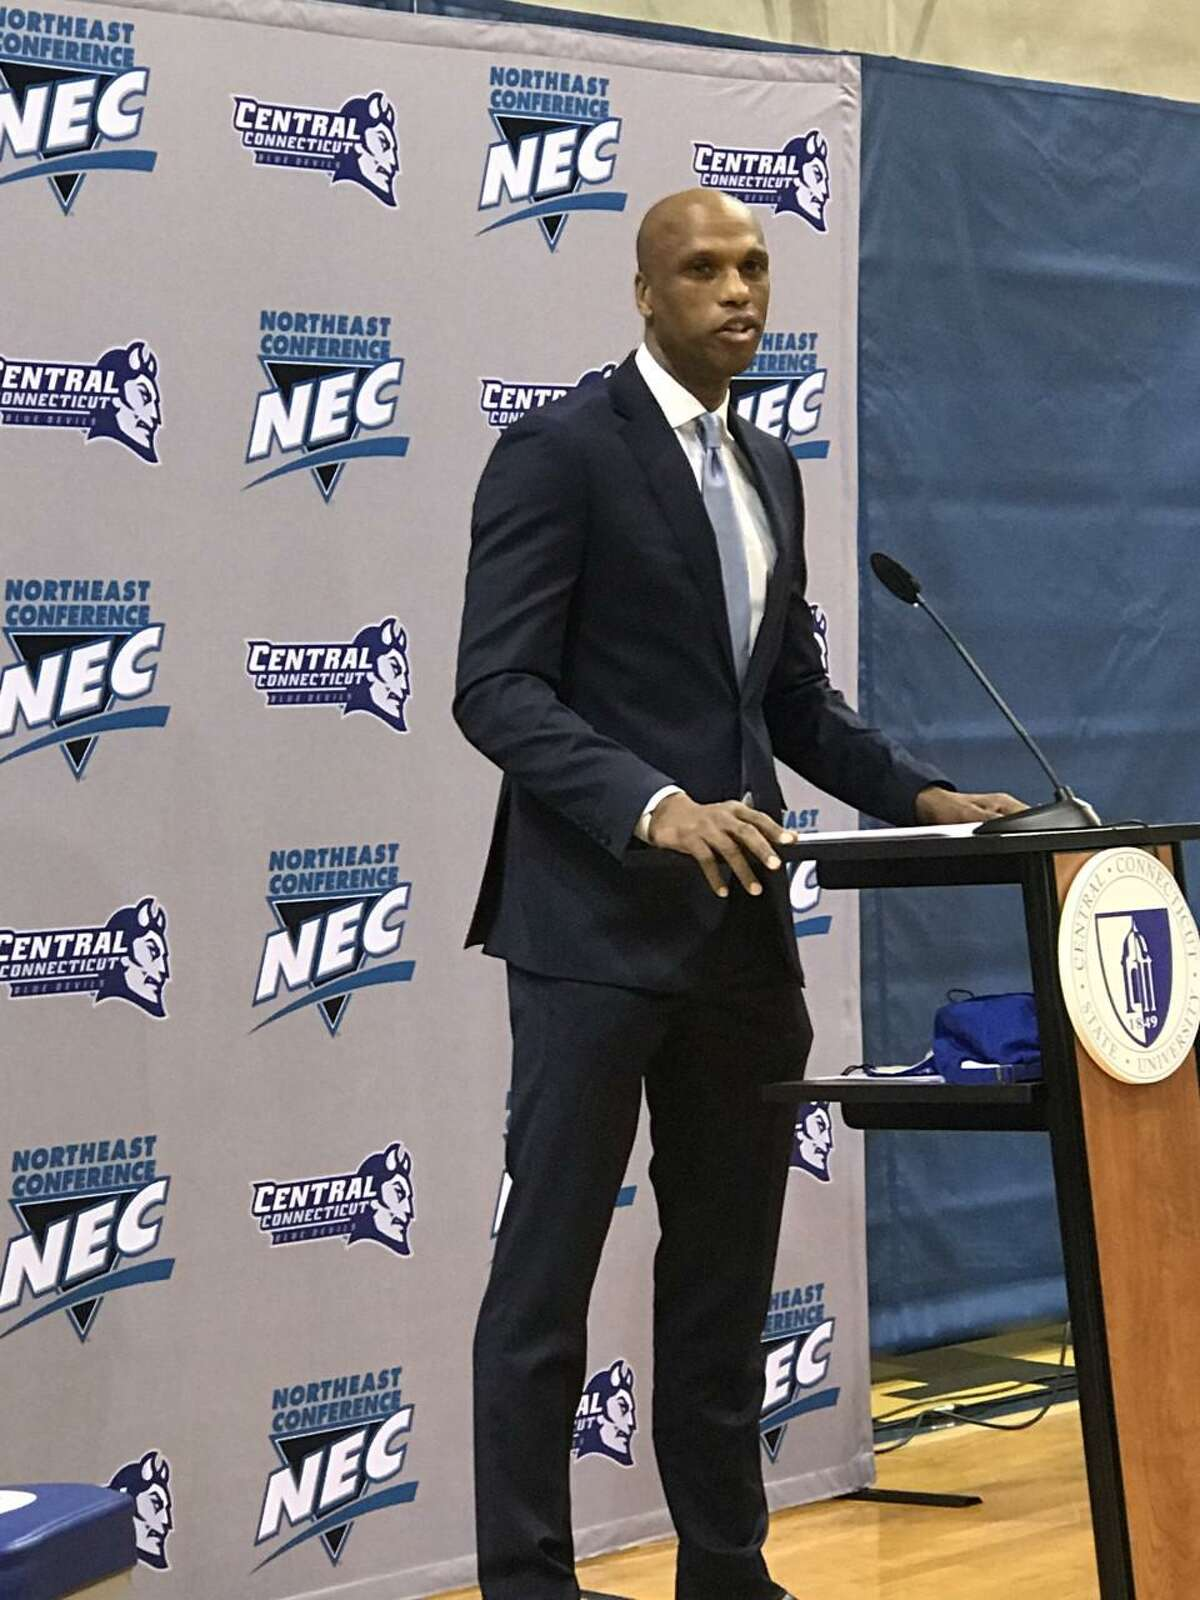 Patrick Sellers speaks during a news conference on Friday to introduce him as the new Central Connecticut State basketball coach.